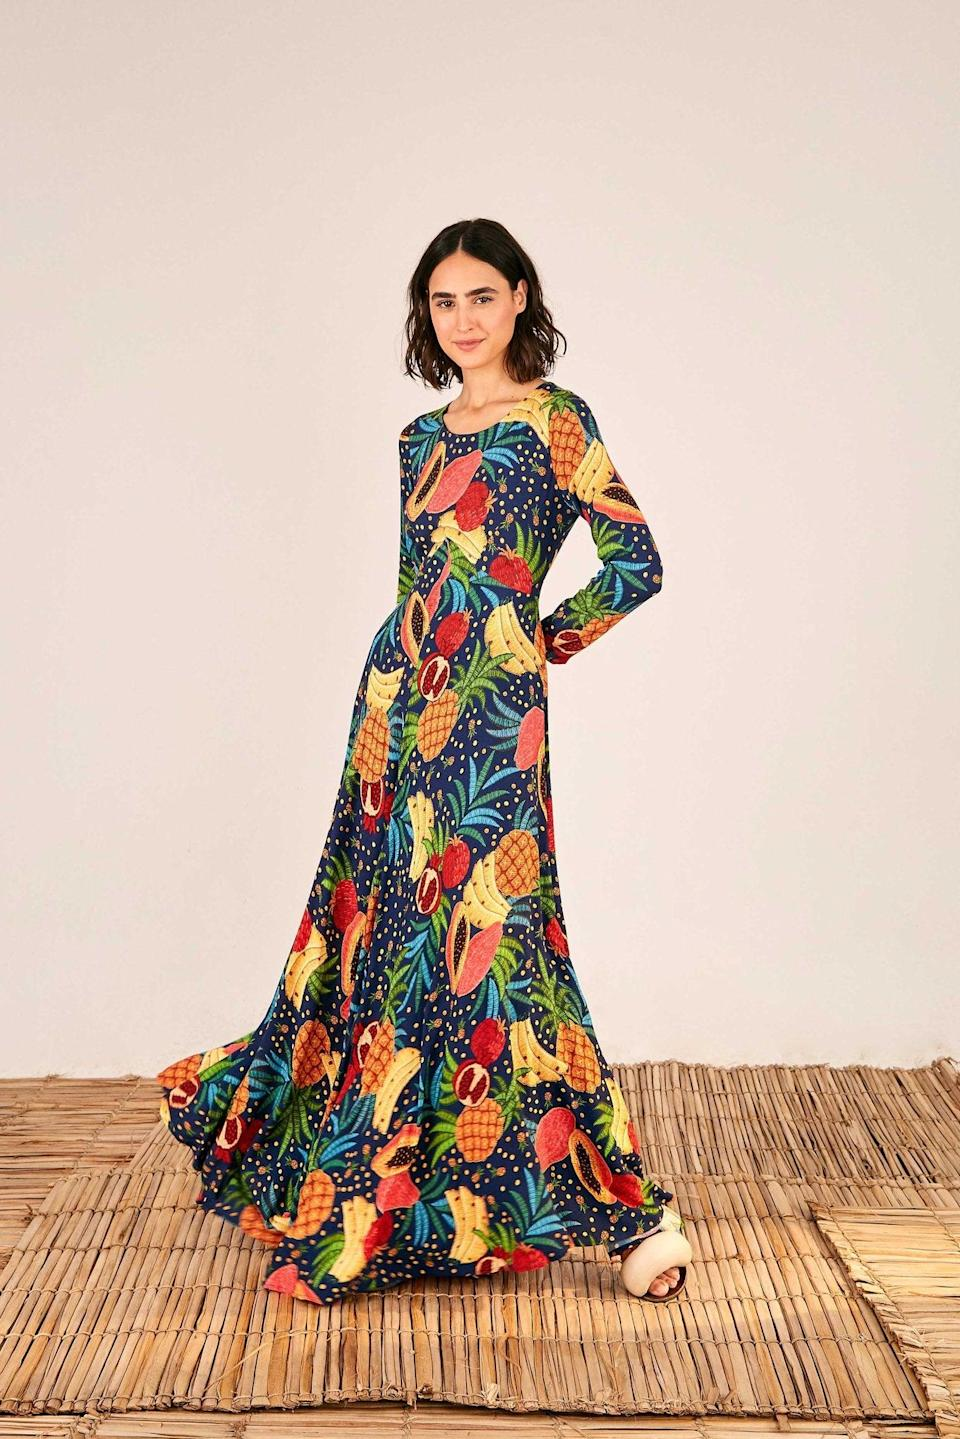 """<br><br><strong>Farm Rio</strong> Fruit Forest Maxi Dress, $, available at <a href=""""https://go.skimresources.com/?id=30283X879131&url=https%3A%2F%2Fwww.farmrio.com%2Fcollections%2Fsale%2Fproducts%2Ffruit-forest-maxi-dress"""" rel=""""nofollow noopener"""" target=""""_blank"""" data-ylk=""""slk:Farm Rio"""" class=""""link rapid-noclick-resp"""">Farm Rio</a>"""